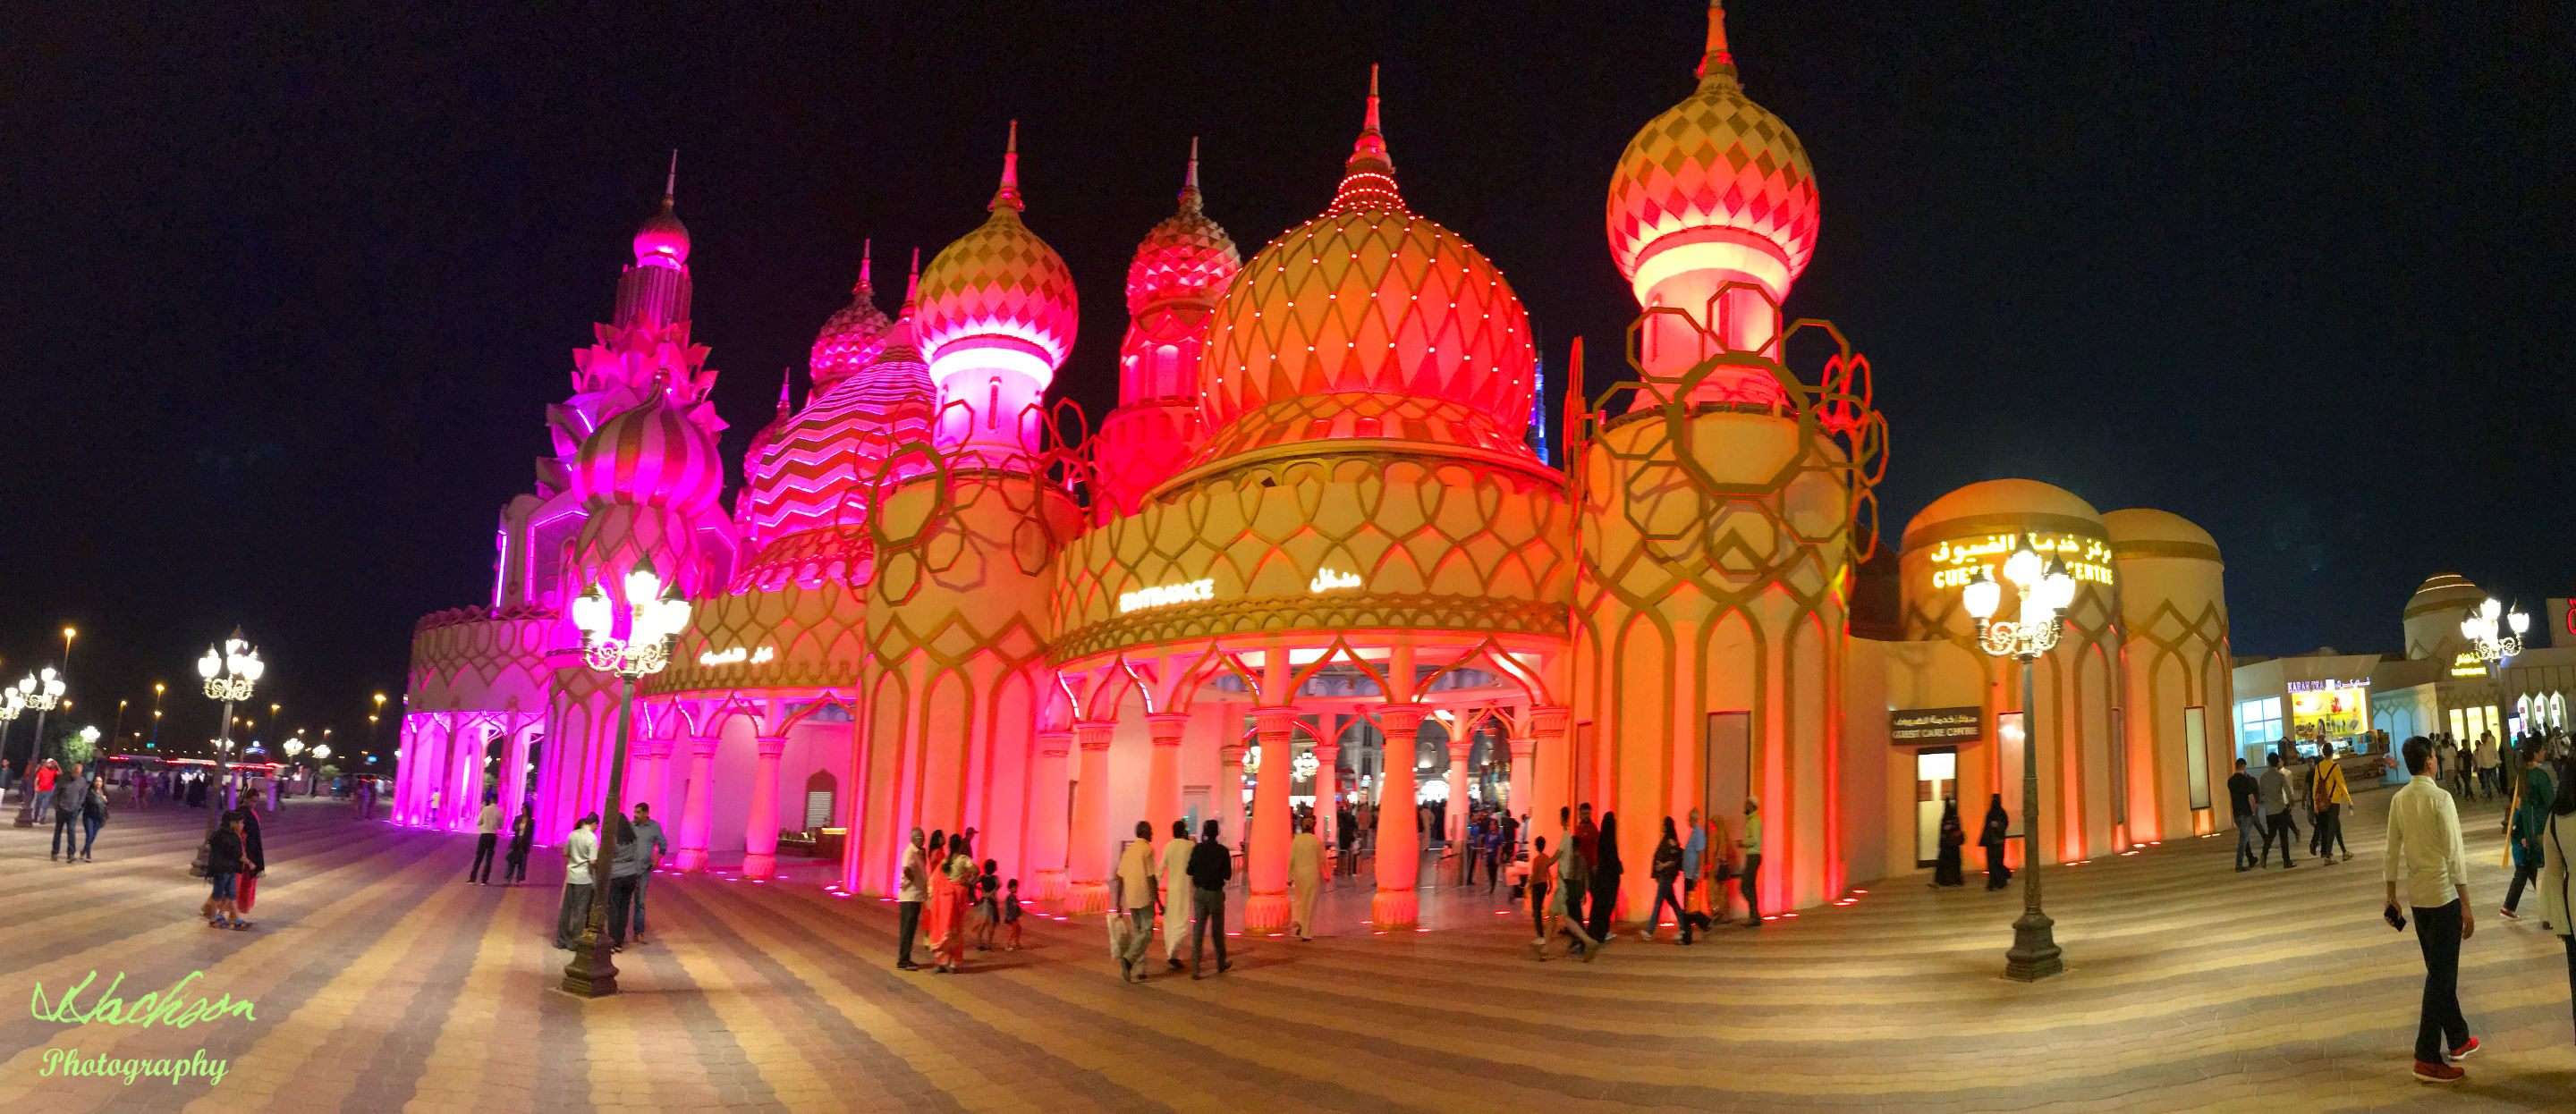 Photo of colorful buildings at the Global Village